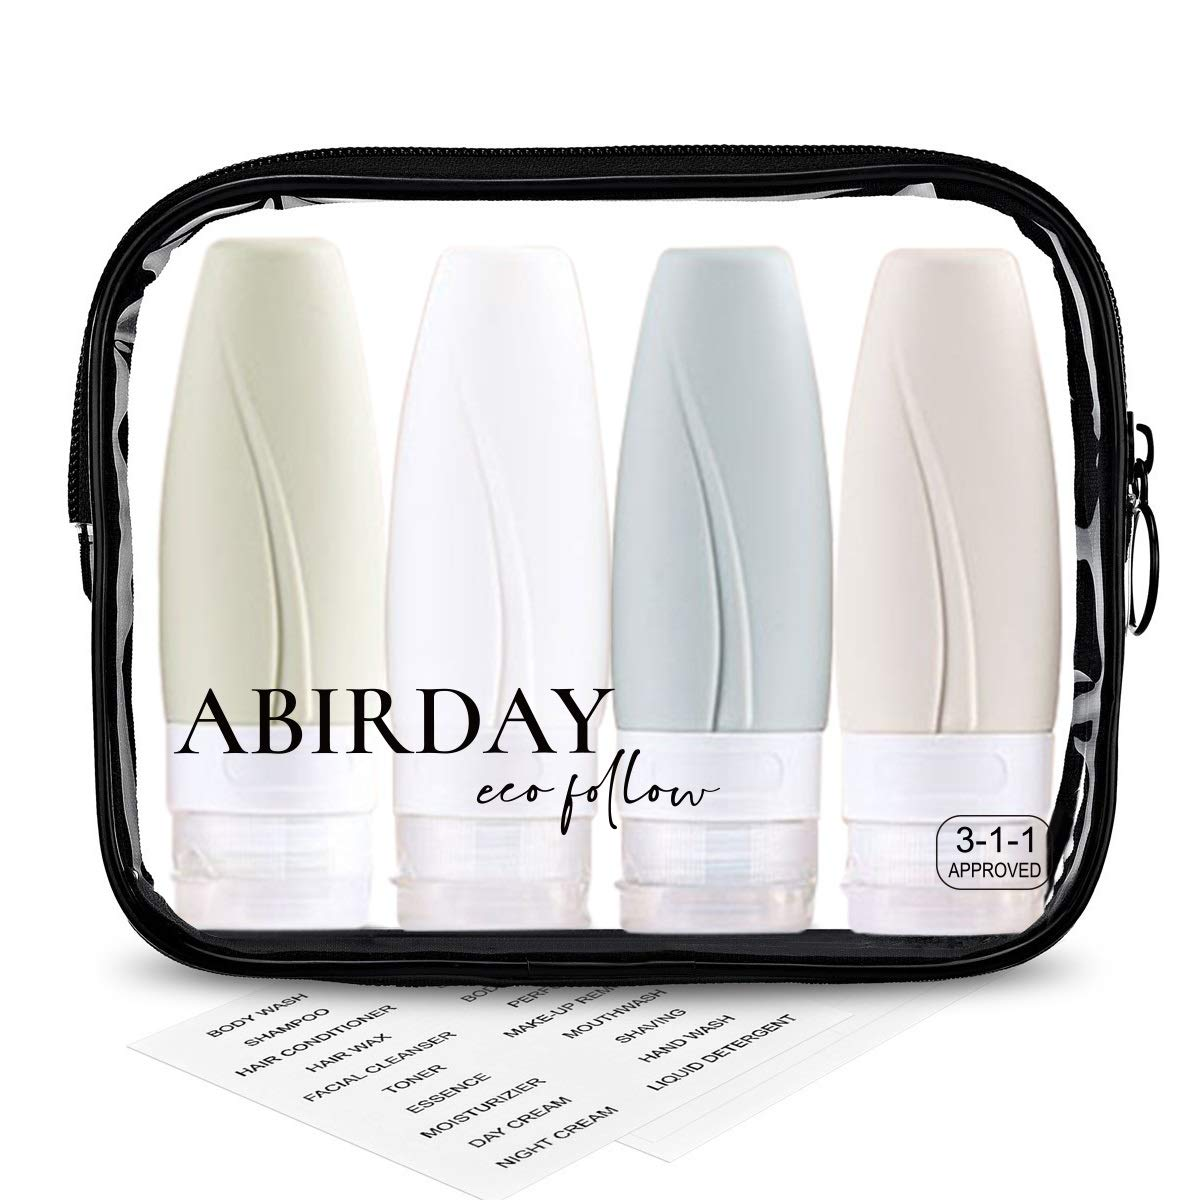 Travel Bottles Containers & Travel Size Toiletries TSA Approved & Leak Proof Travel Accessories Tubes Kit with Clear Quart Toiletry Bag for Liquids Carry-On Luggage Set for Women/Men (SET-C 2OZ/60ML)